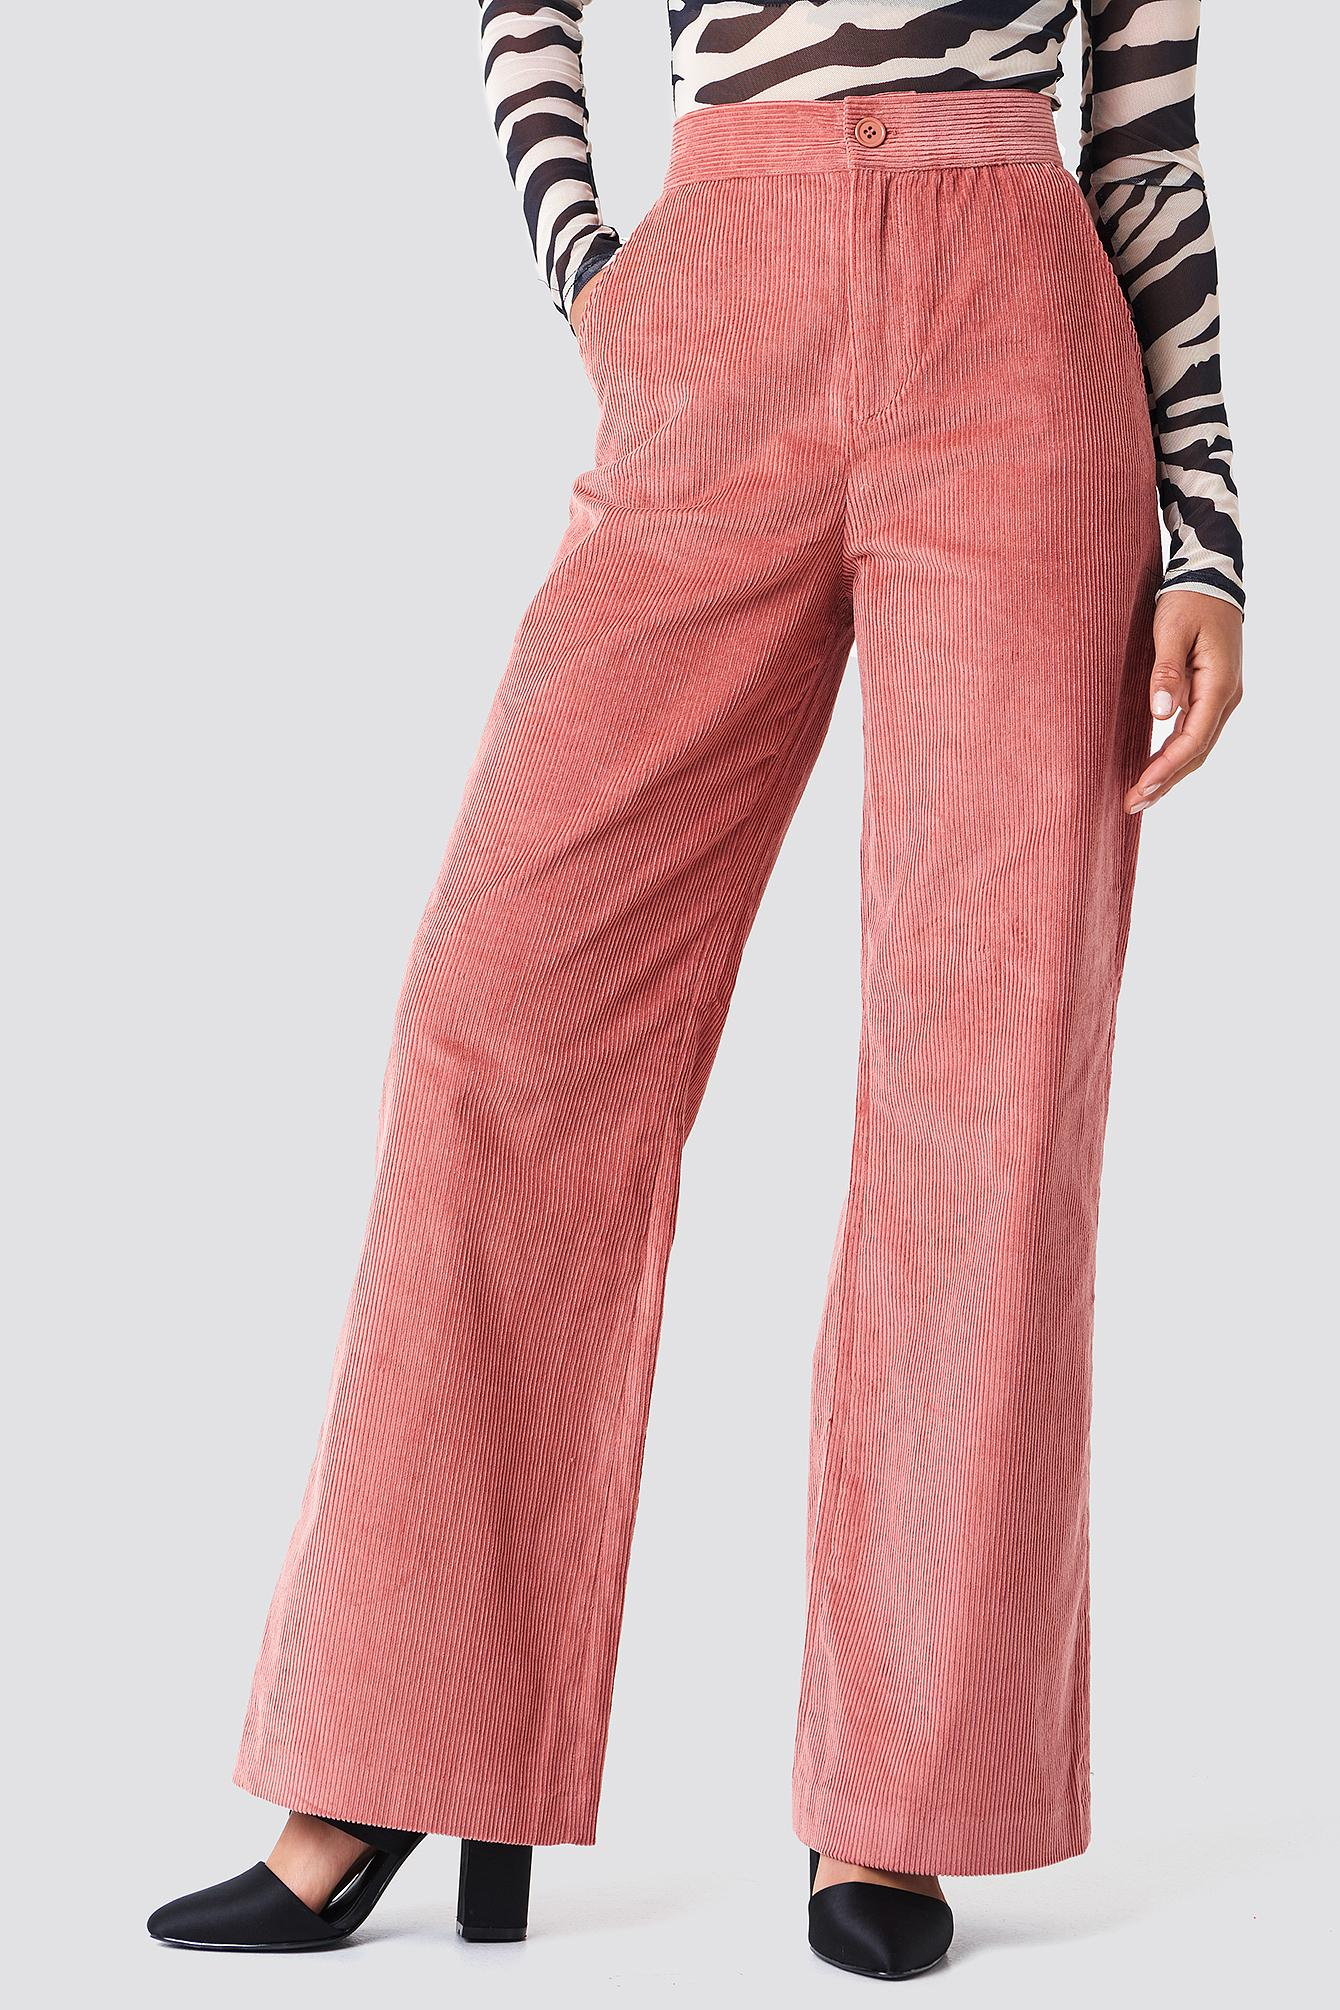 36f91c089a5a7 NA-KD Corduroy Suit Pants Pink in Pink - Lyst